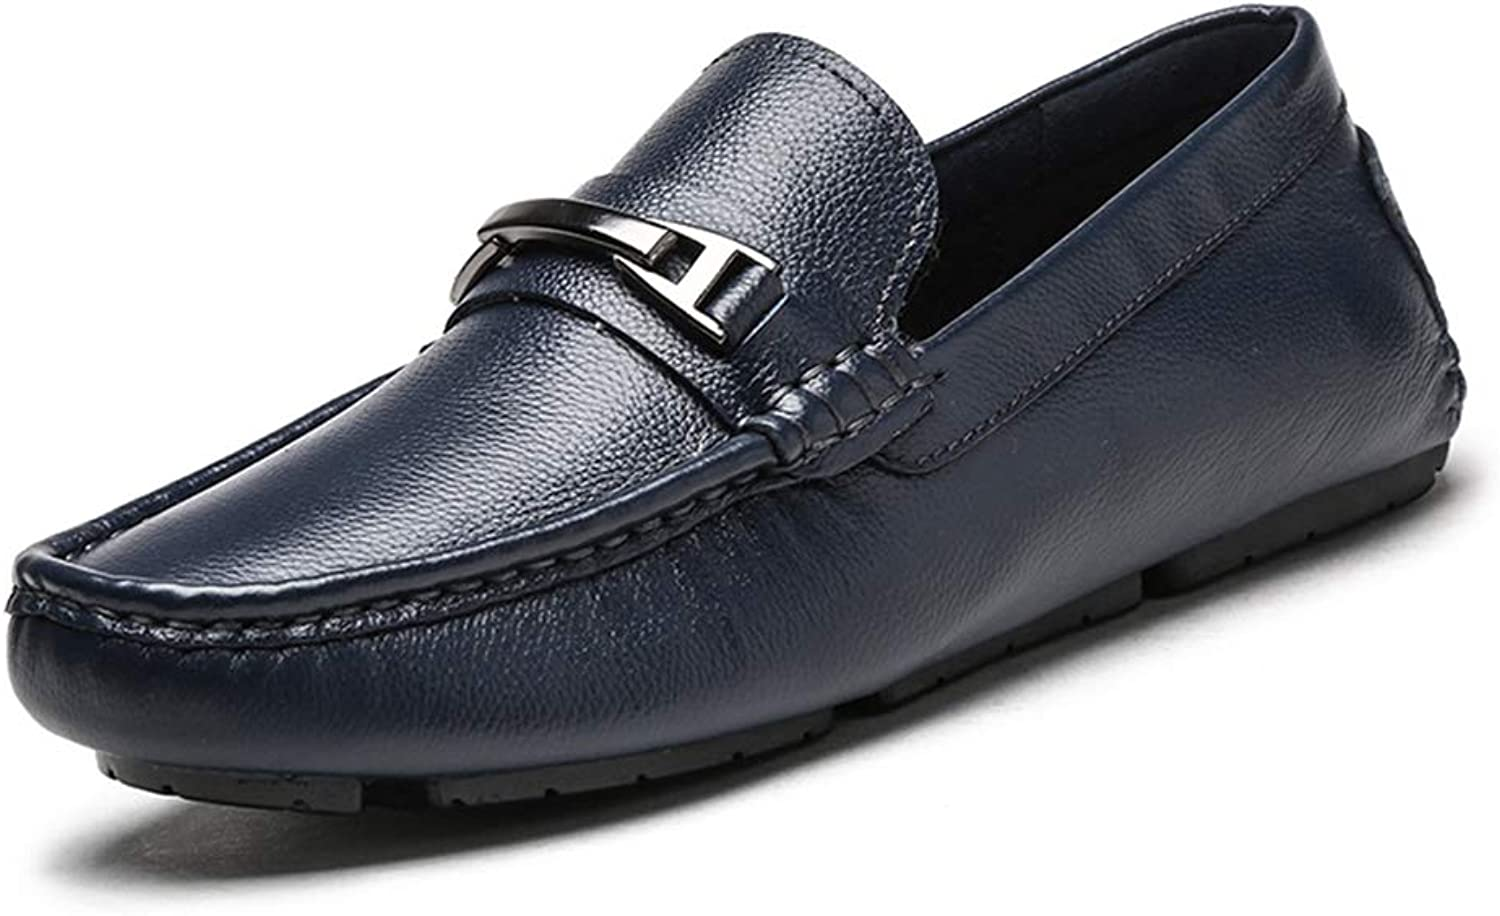 LXLA- Men's Casual Slip-On Leather shoes, Mens Comfortable Round Head Loafers for Men (color   bluee, Size   9 US 8 UK)